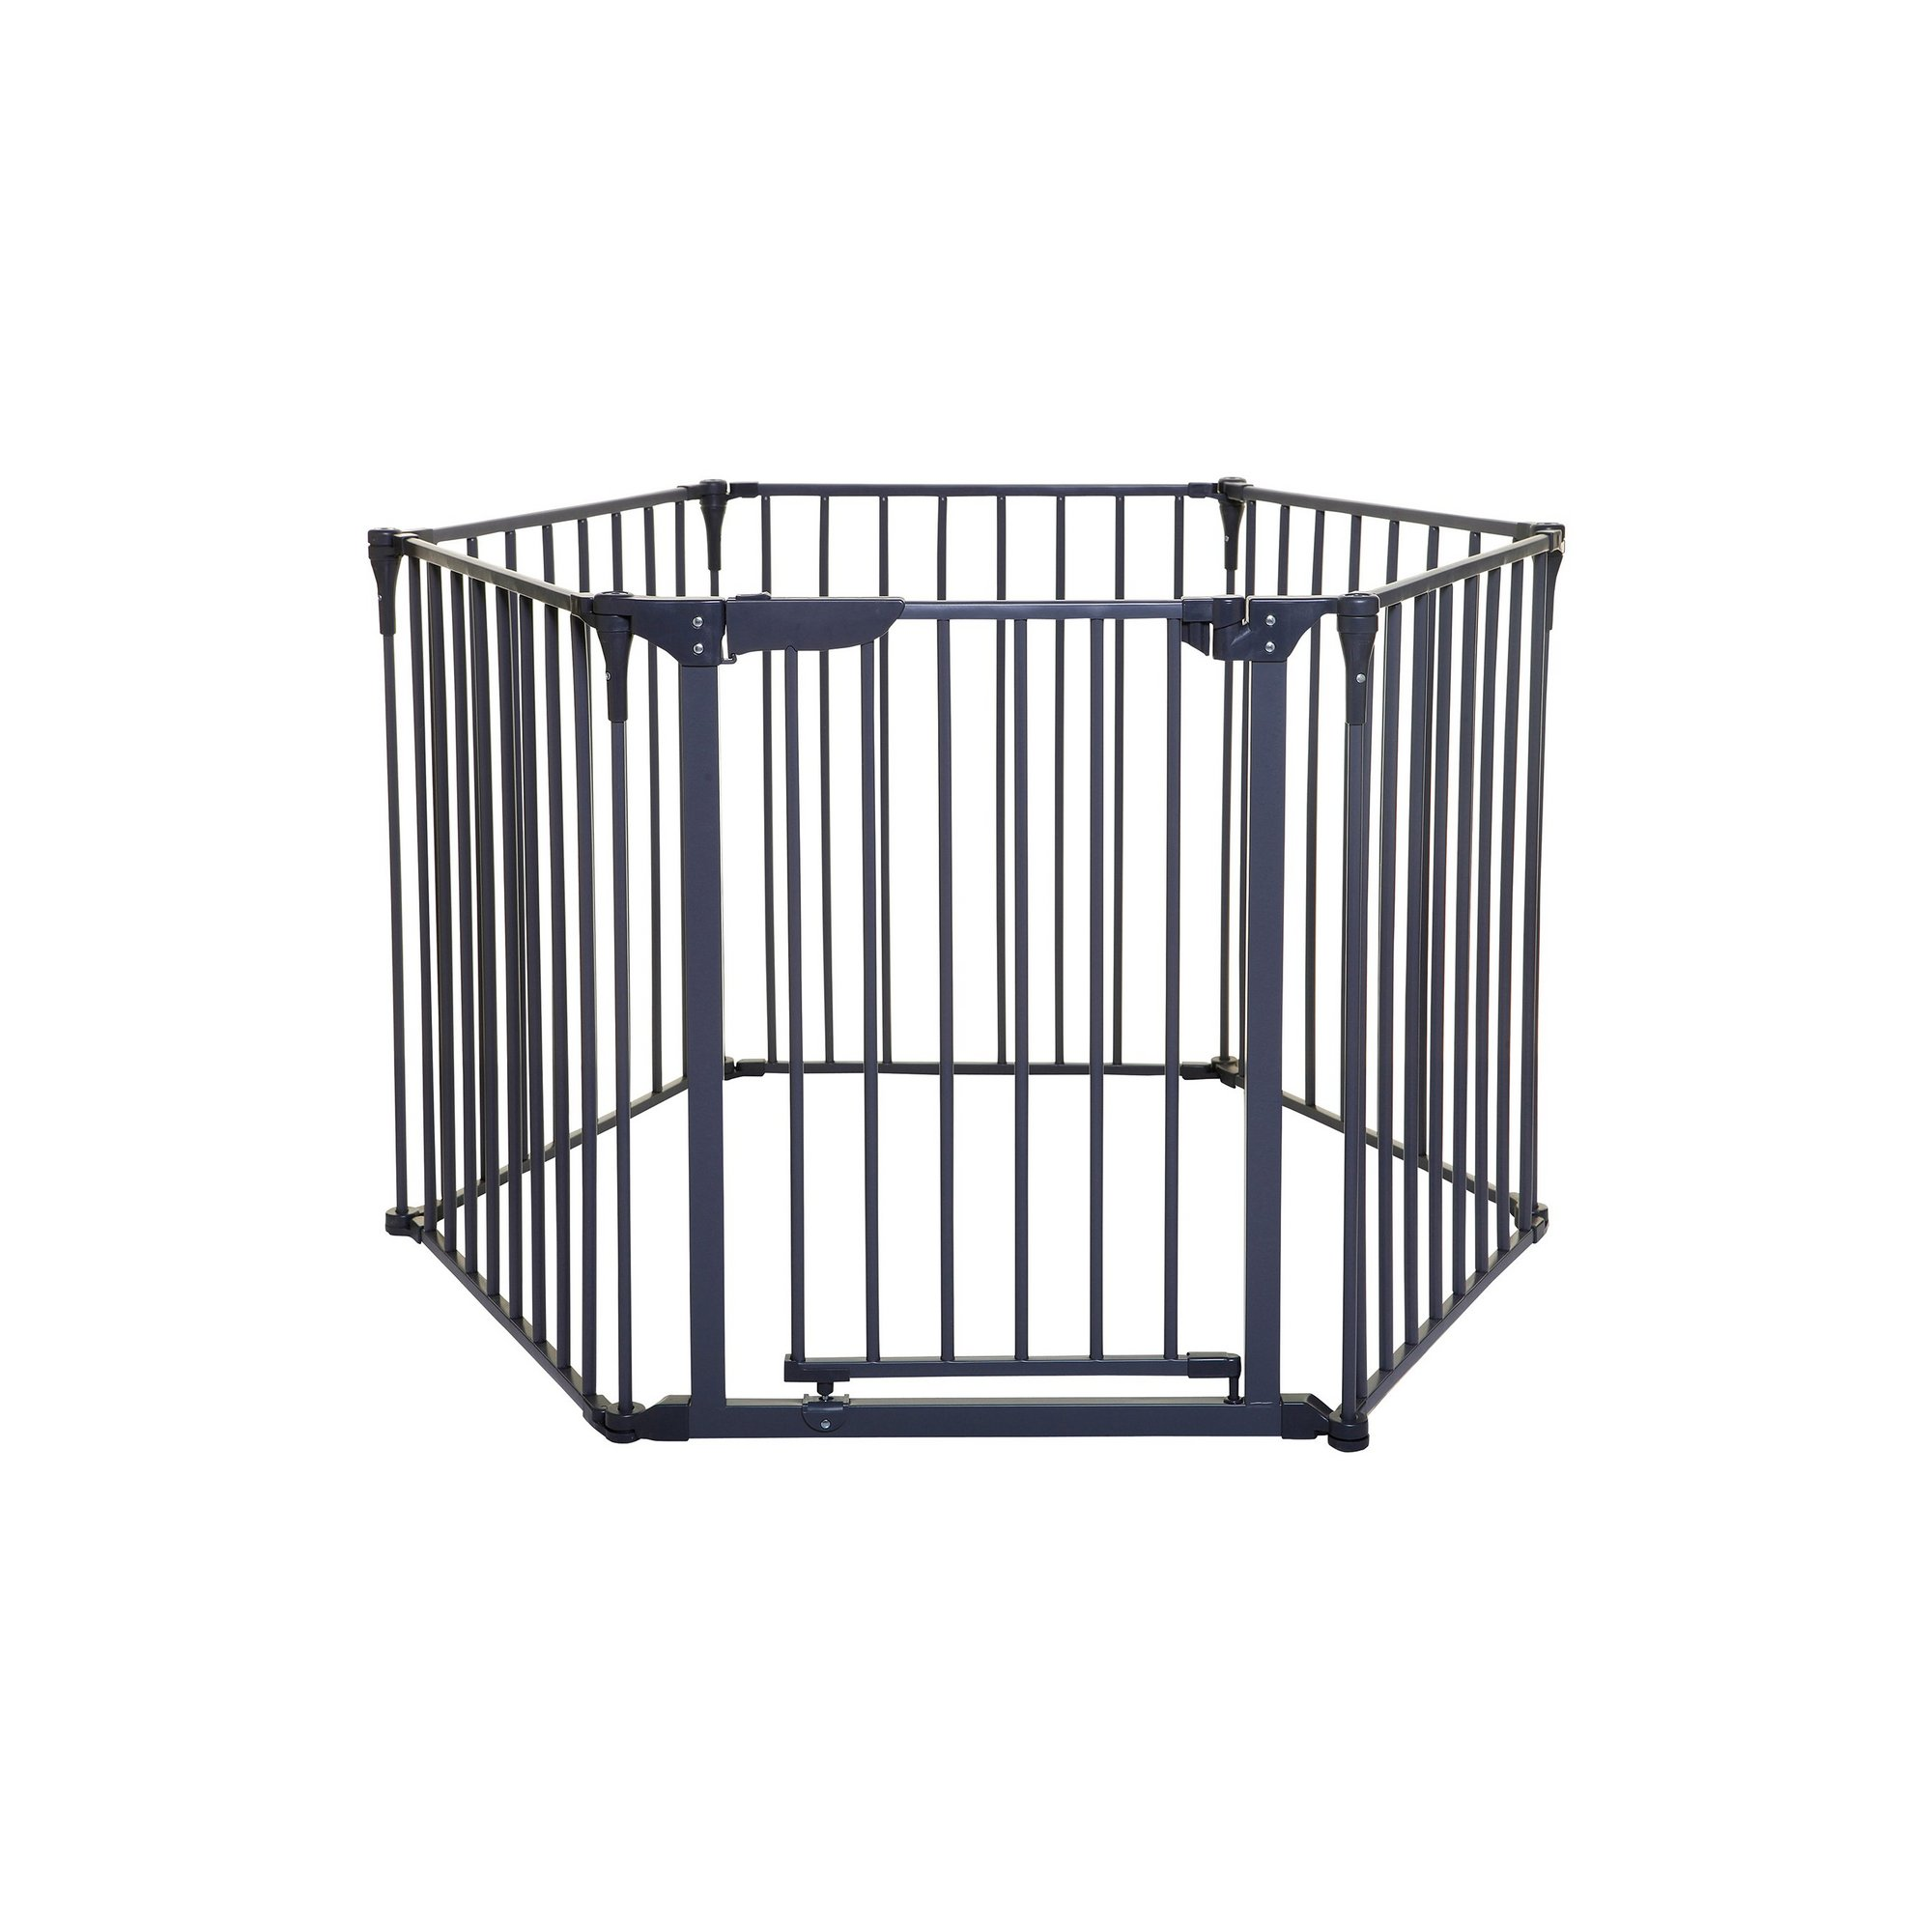 Image of Royal Converta Playpen - Charcoal